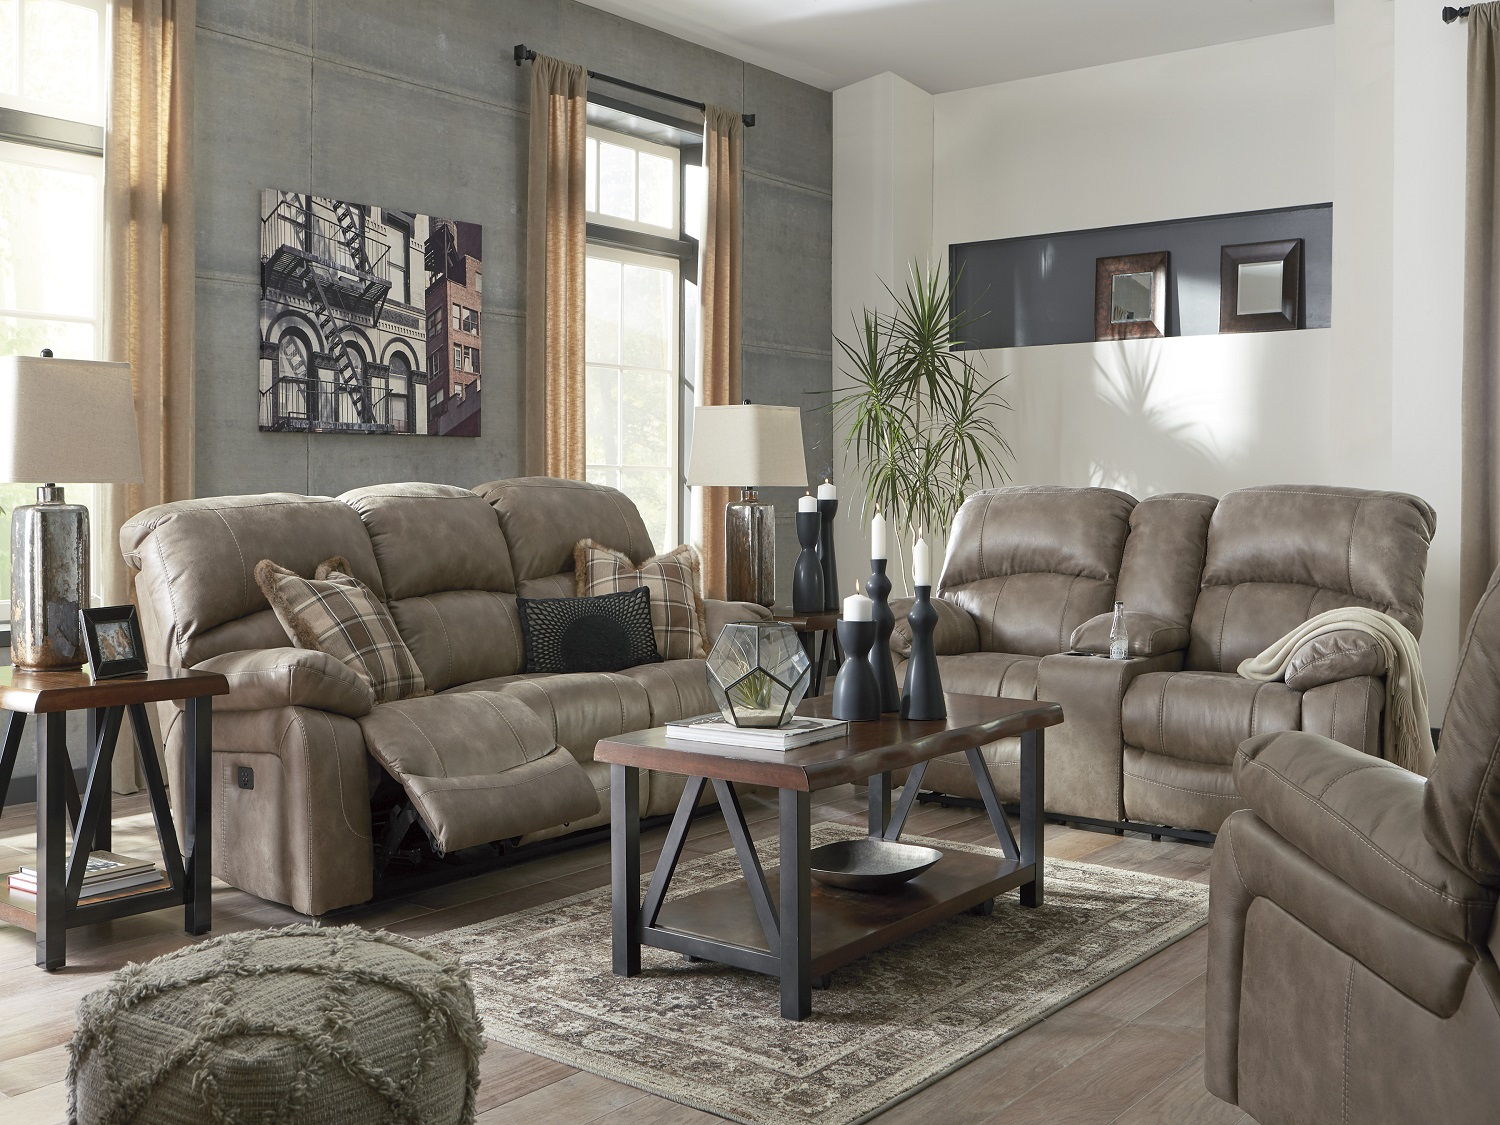 Dunwell Recliner Sofa Only, 516, Recliner Sofa Sets by Midha Furniture to Brampton, Mississauga, Etobicoke, Toronto, Scraborough, Caledon, Oakville, Markham, Ajax, Pickering, Oshawa, Richmondhill, Kitchener, Hamilton and GTA area